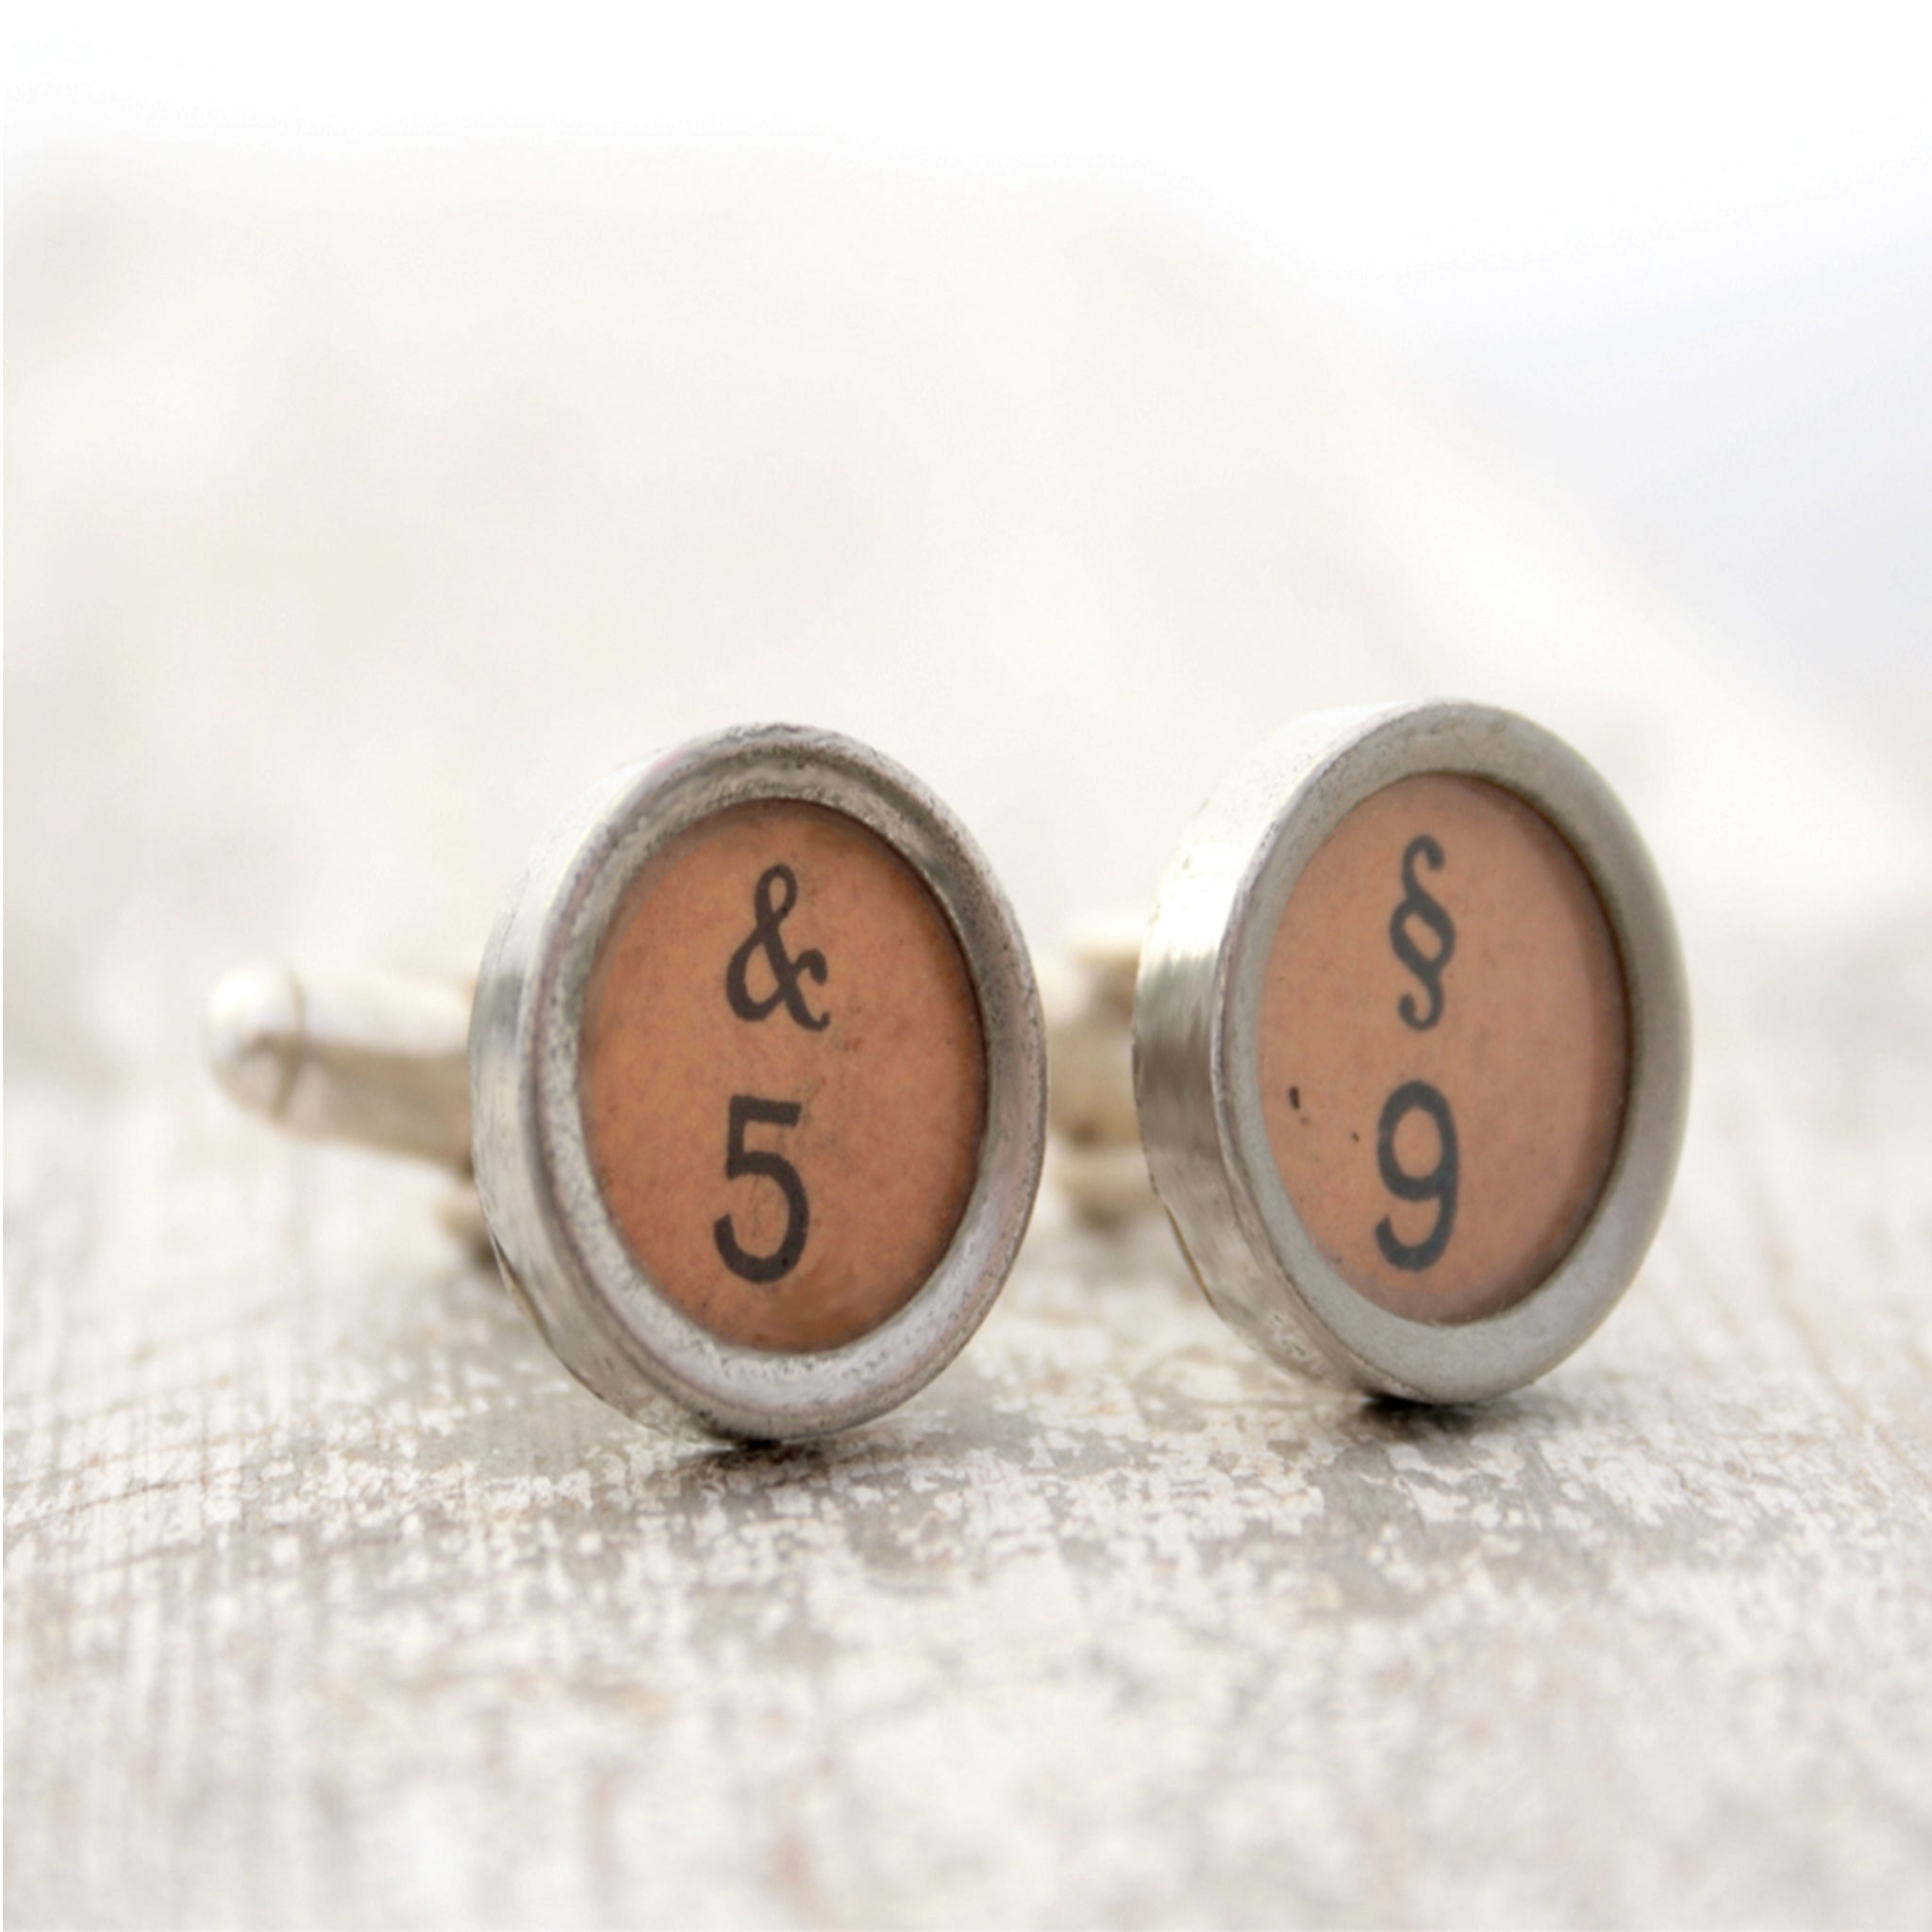 Typewriter Key Cufflinks